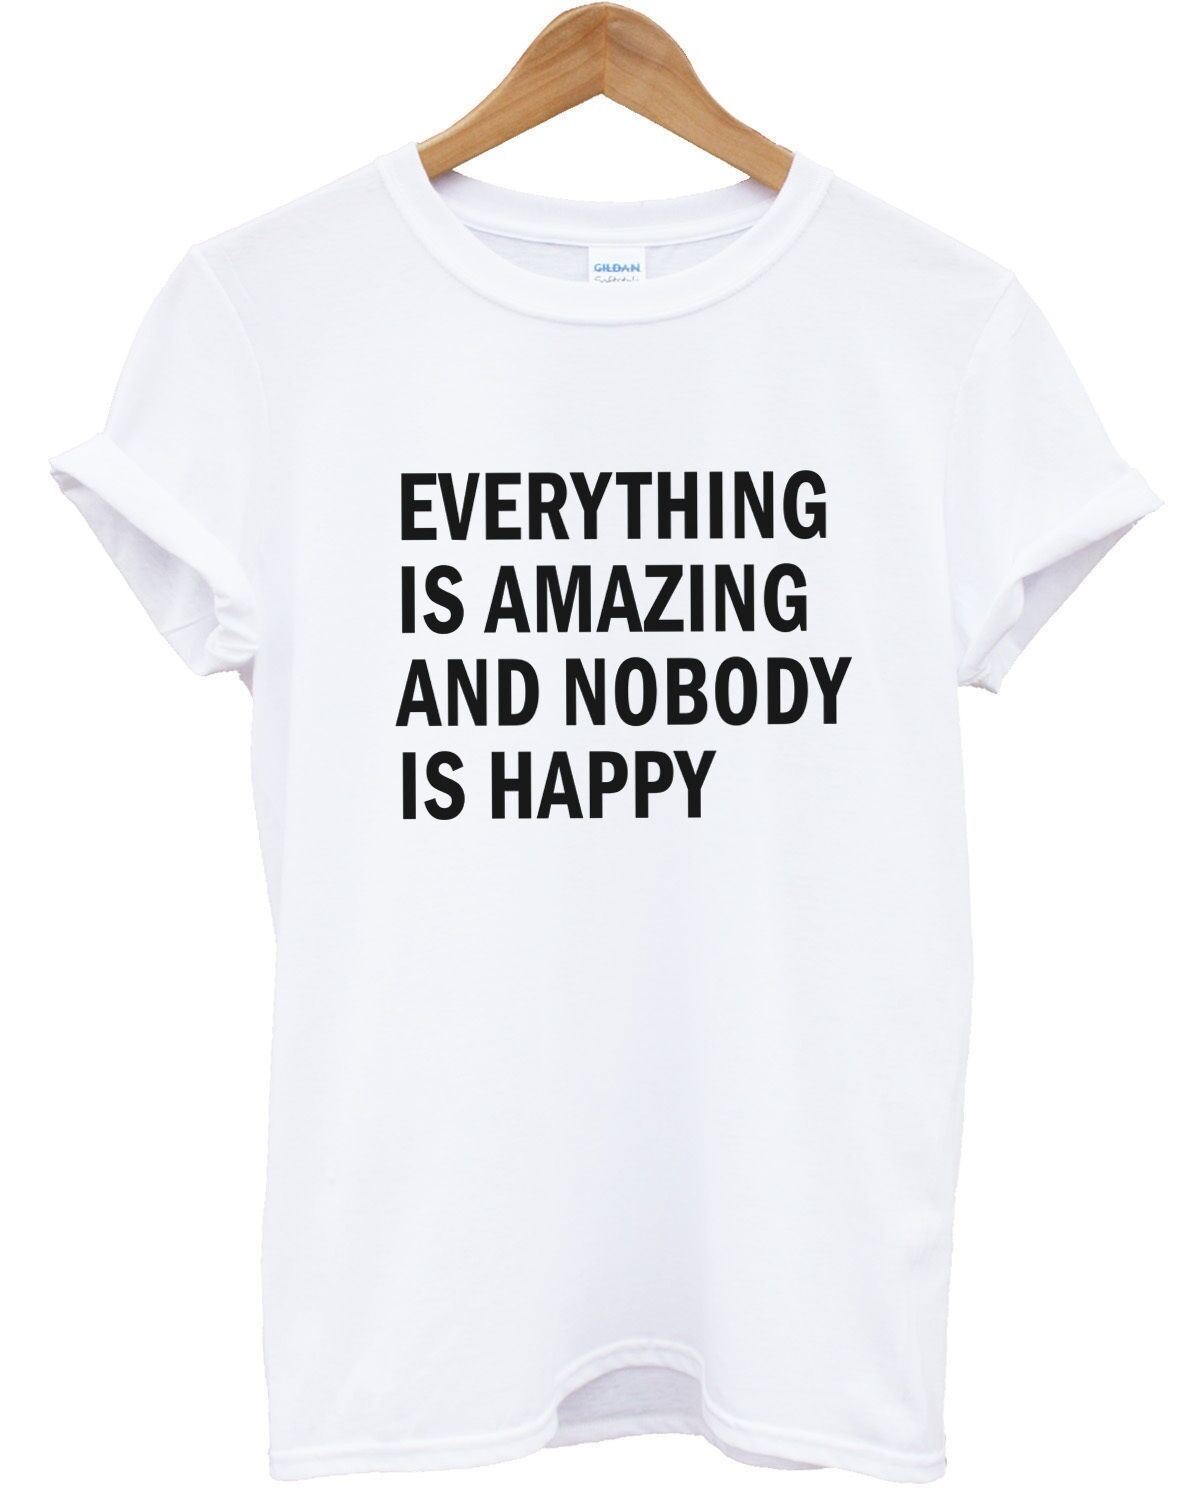 EVERYTHING IS AMAZING AND NOBODY IS HAPPY T SHIRT TOP HIPSTER MEN WOMEN BLOG image